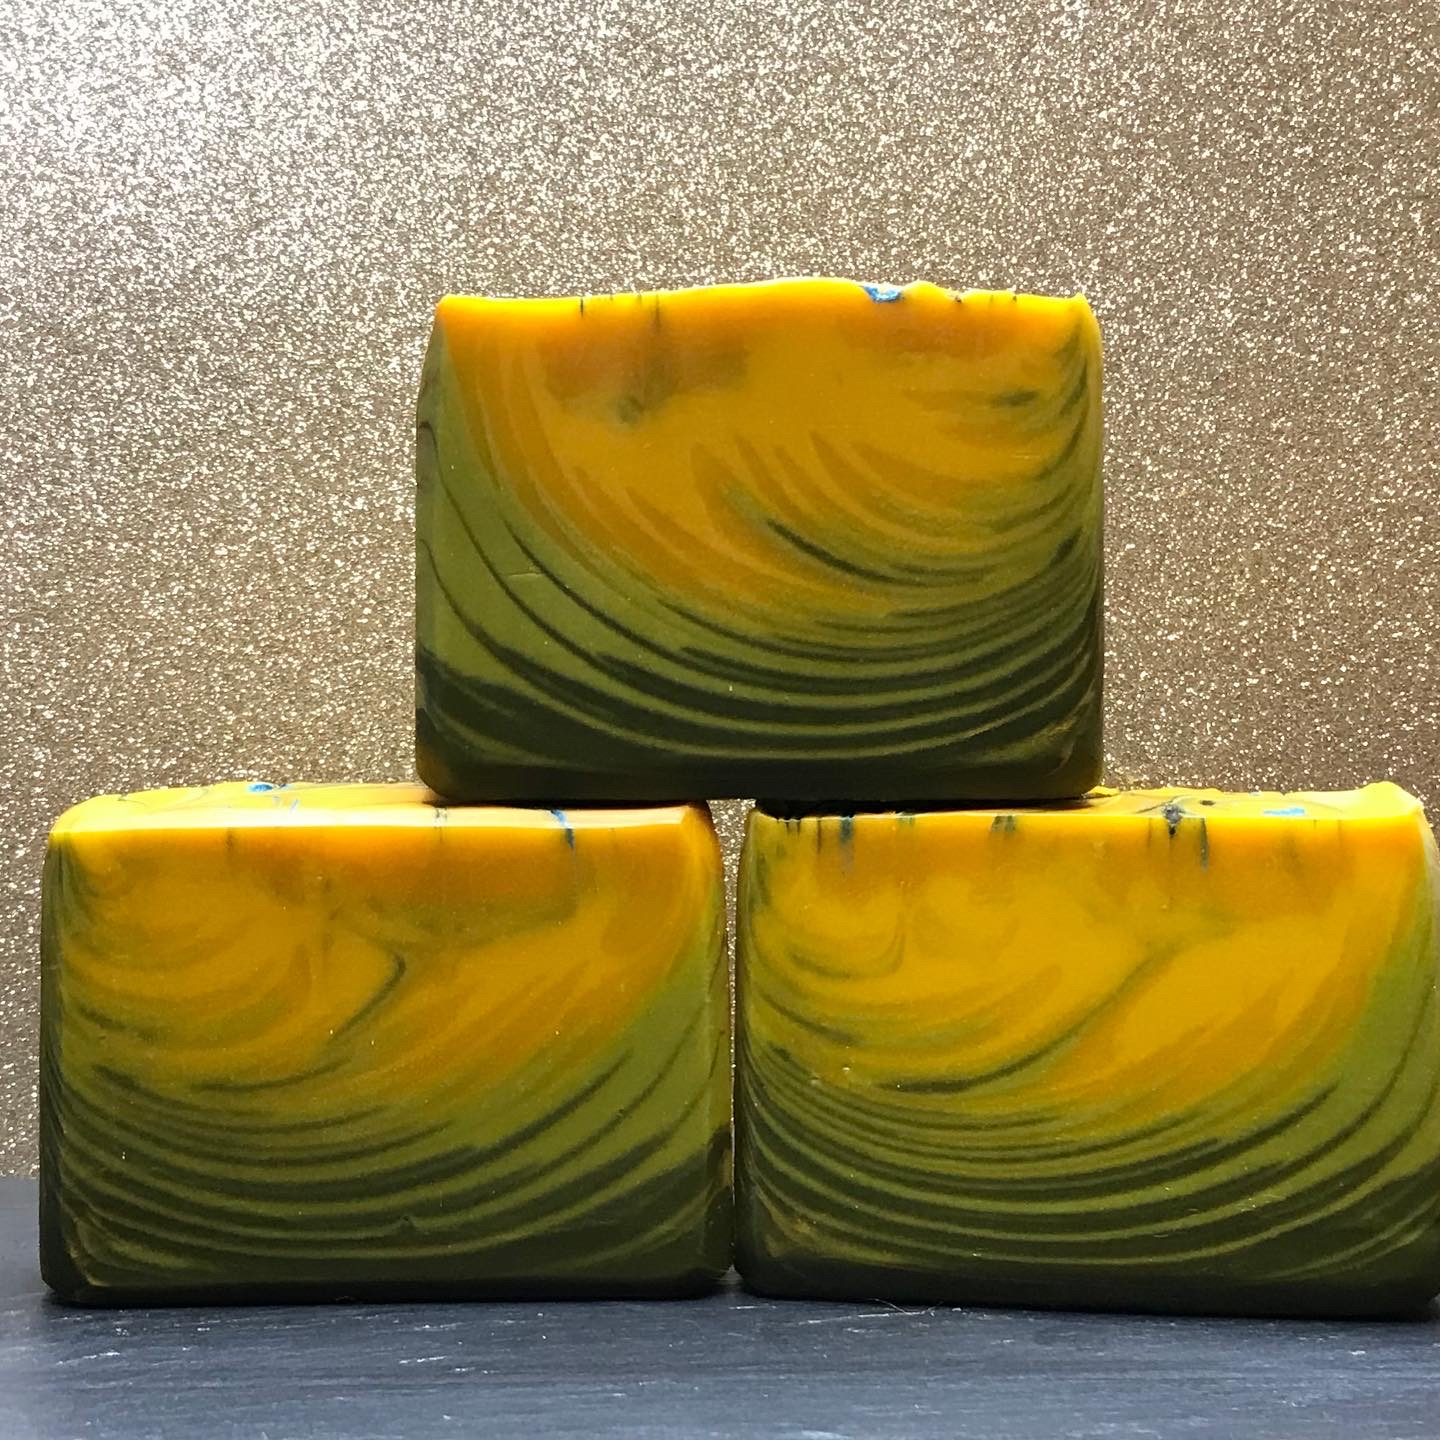 yuzu conditioning bar